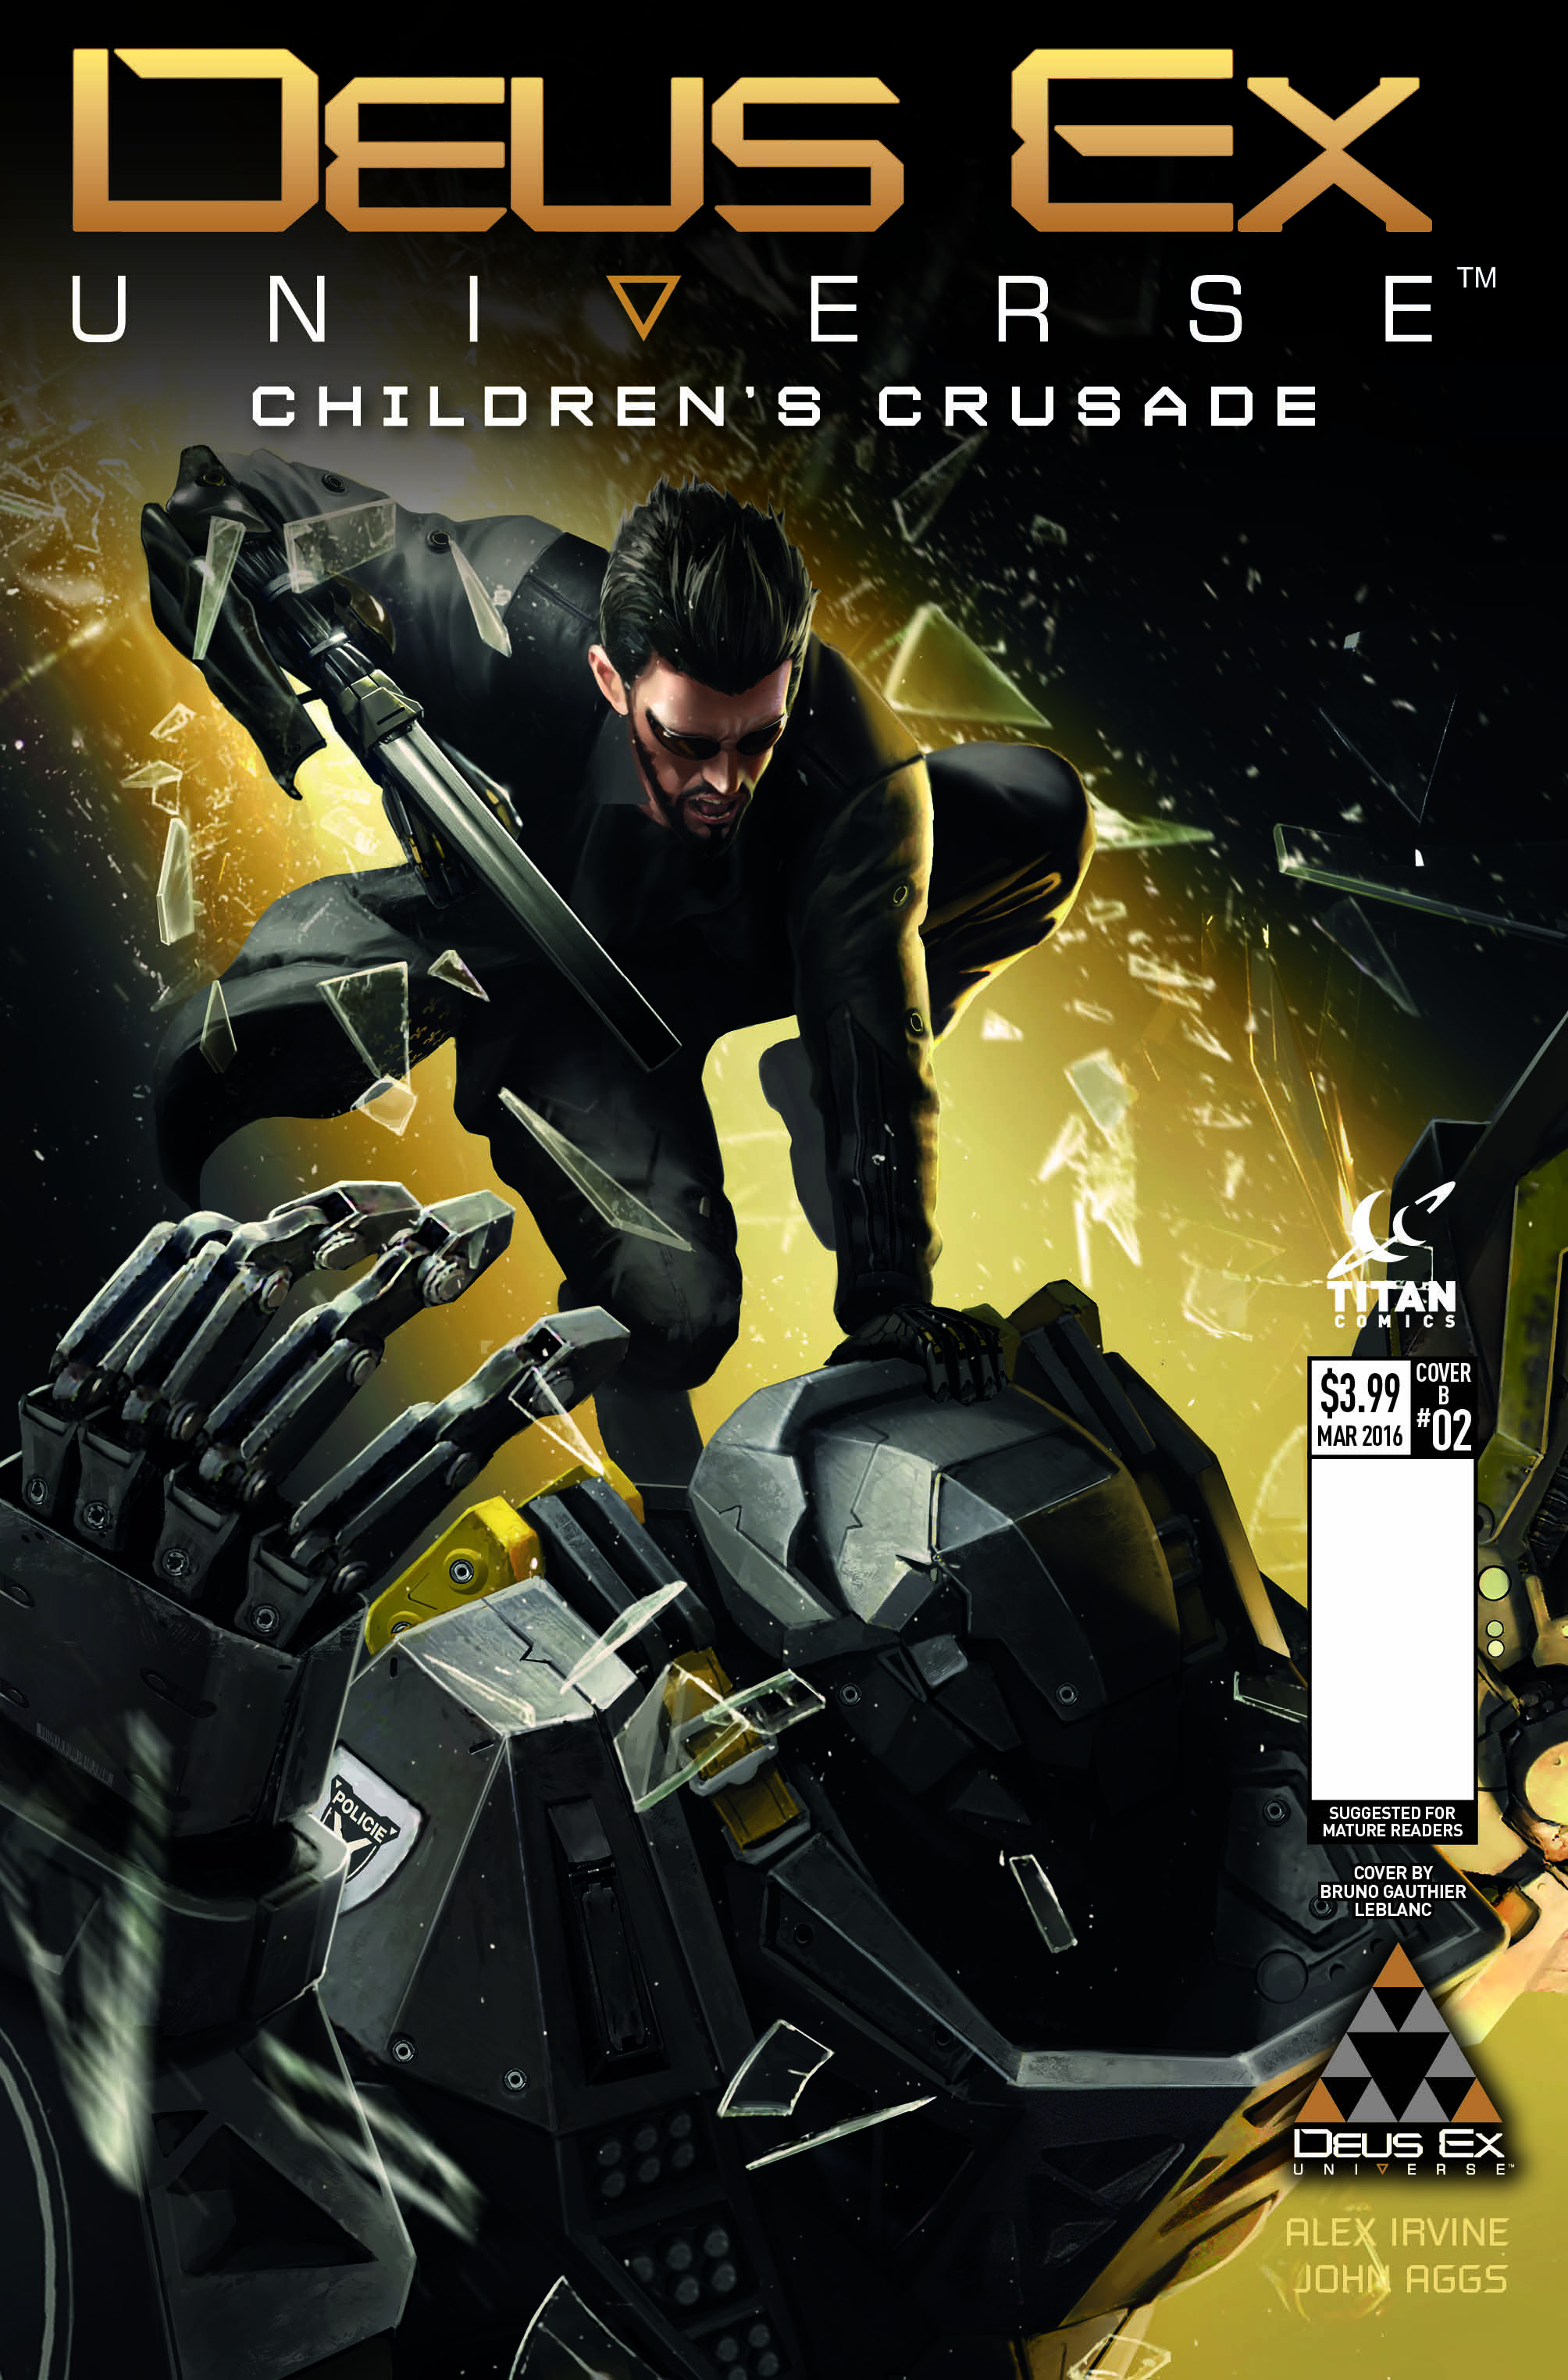 Cover B - Concept Cover